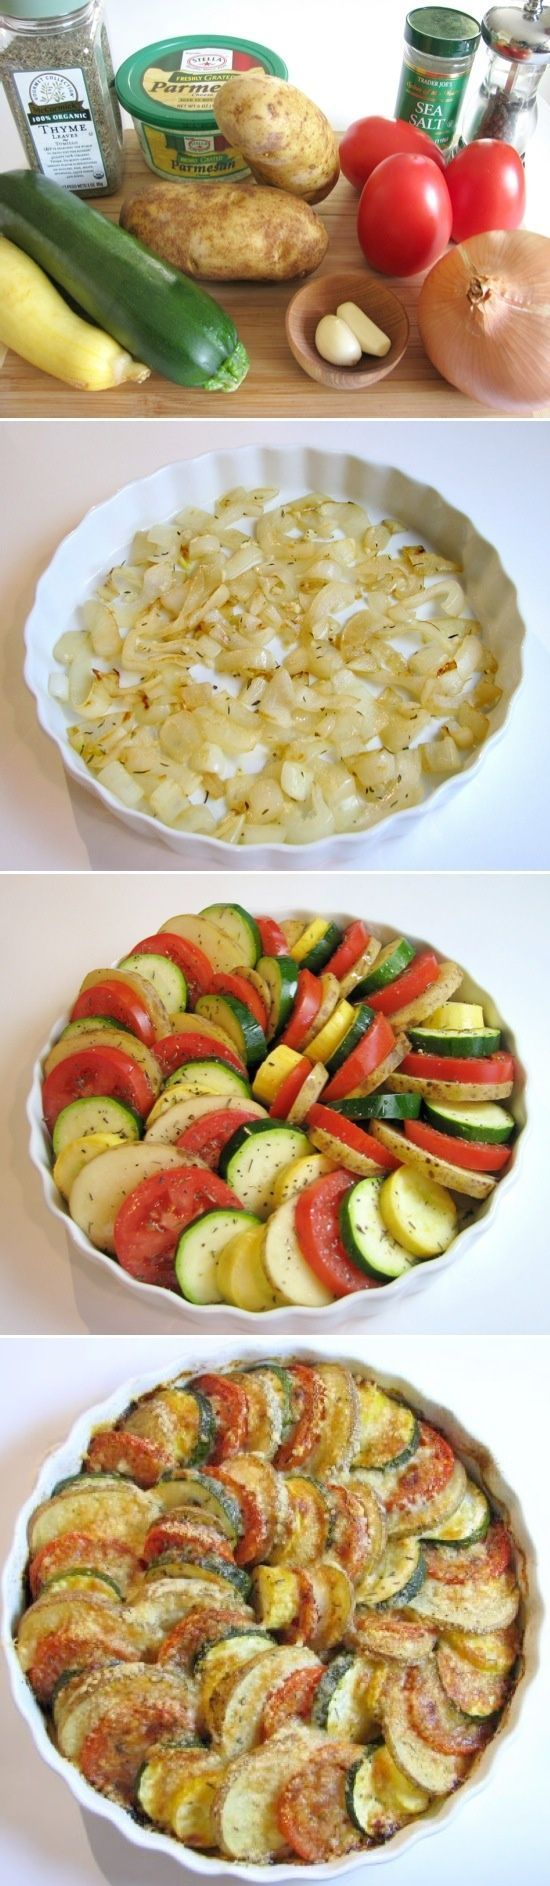 Bed of onions is topped by a medley of veggies (tomatoes, squash, potato & zucchini) then drizzled with olive oil sprinkled with Parmesan cheese & roasted #vegetarian #meatlessmondays